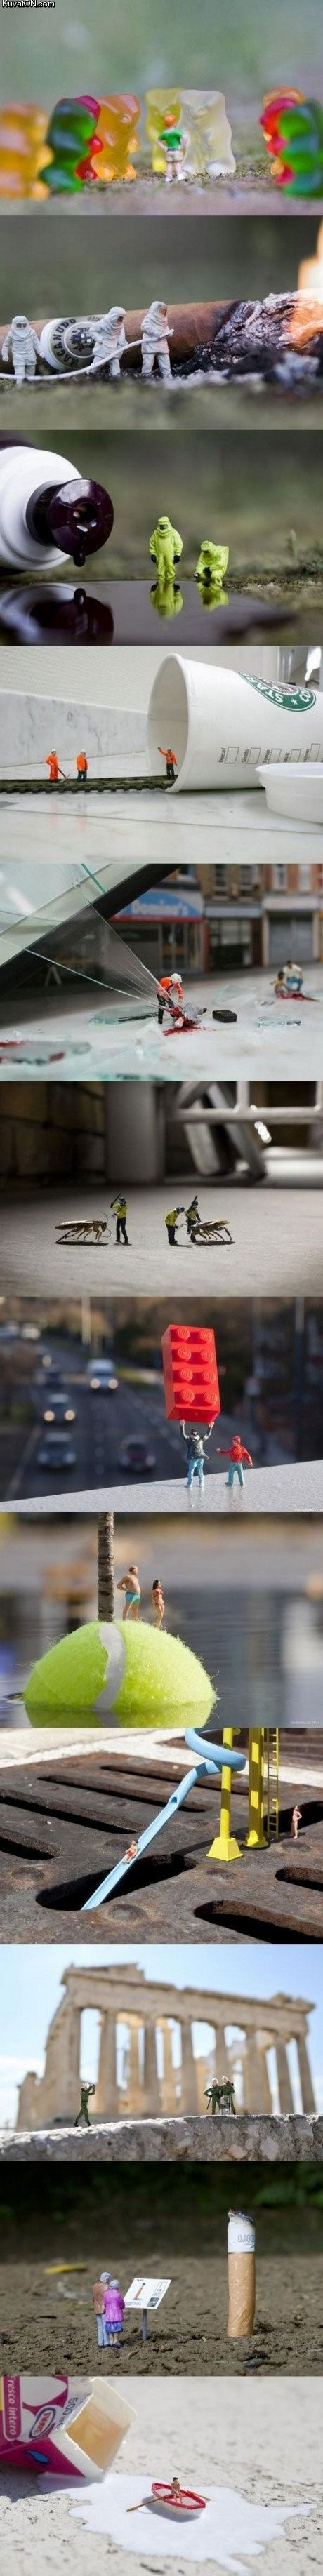 .Forced perspective Photography. Check out slinkachu at http://slinkachu.com/